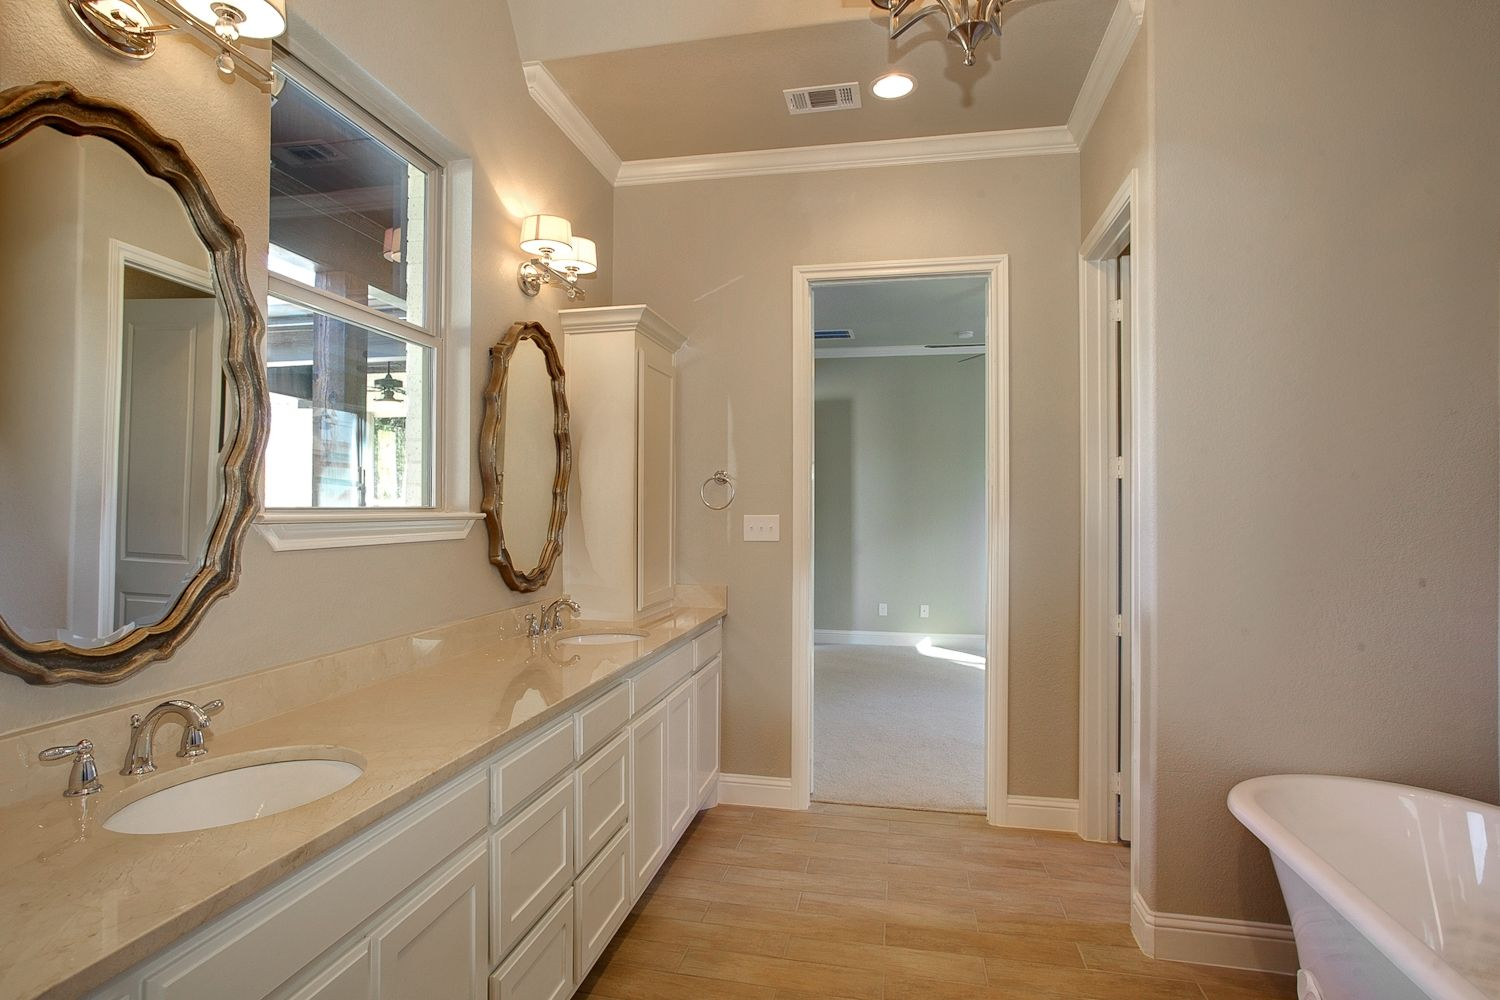 Bone Colored Bathroom Fixtures Remodeling Your Bathroom Could Be - Colored bathroom fixtures